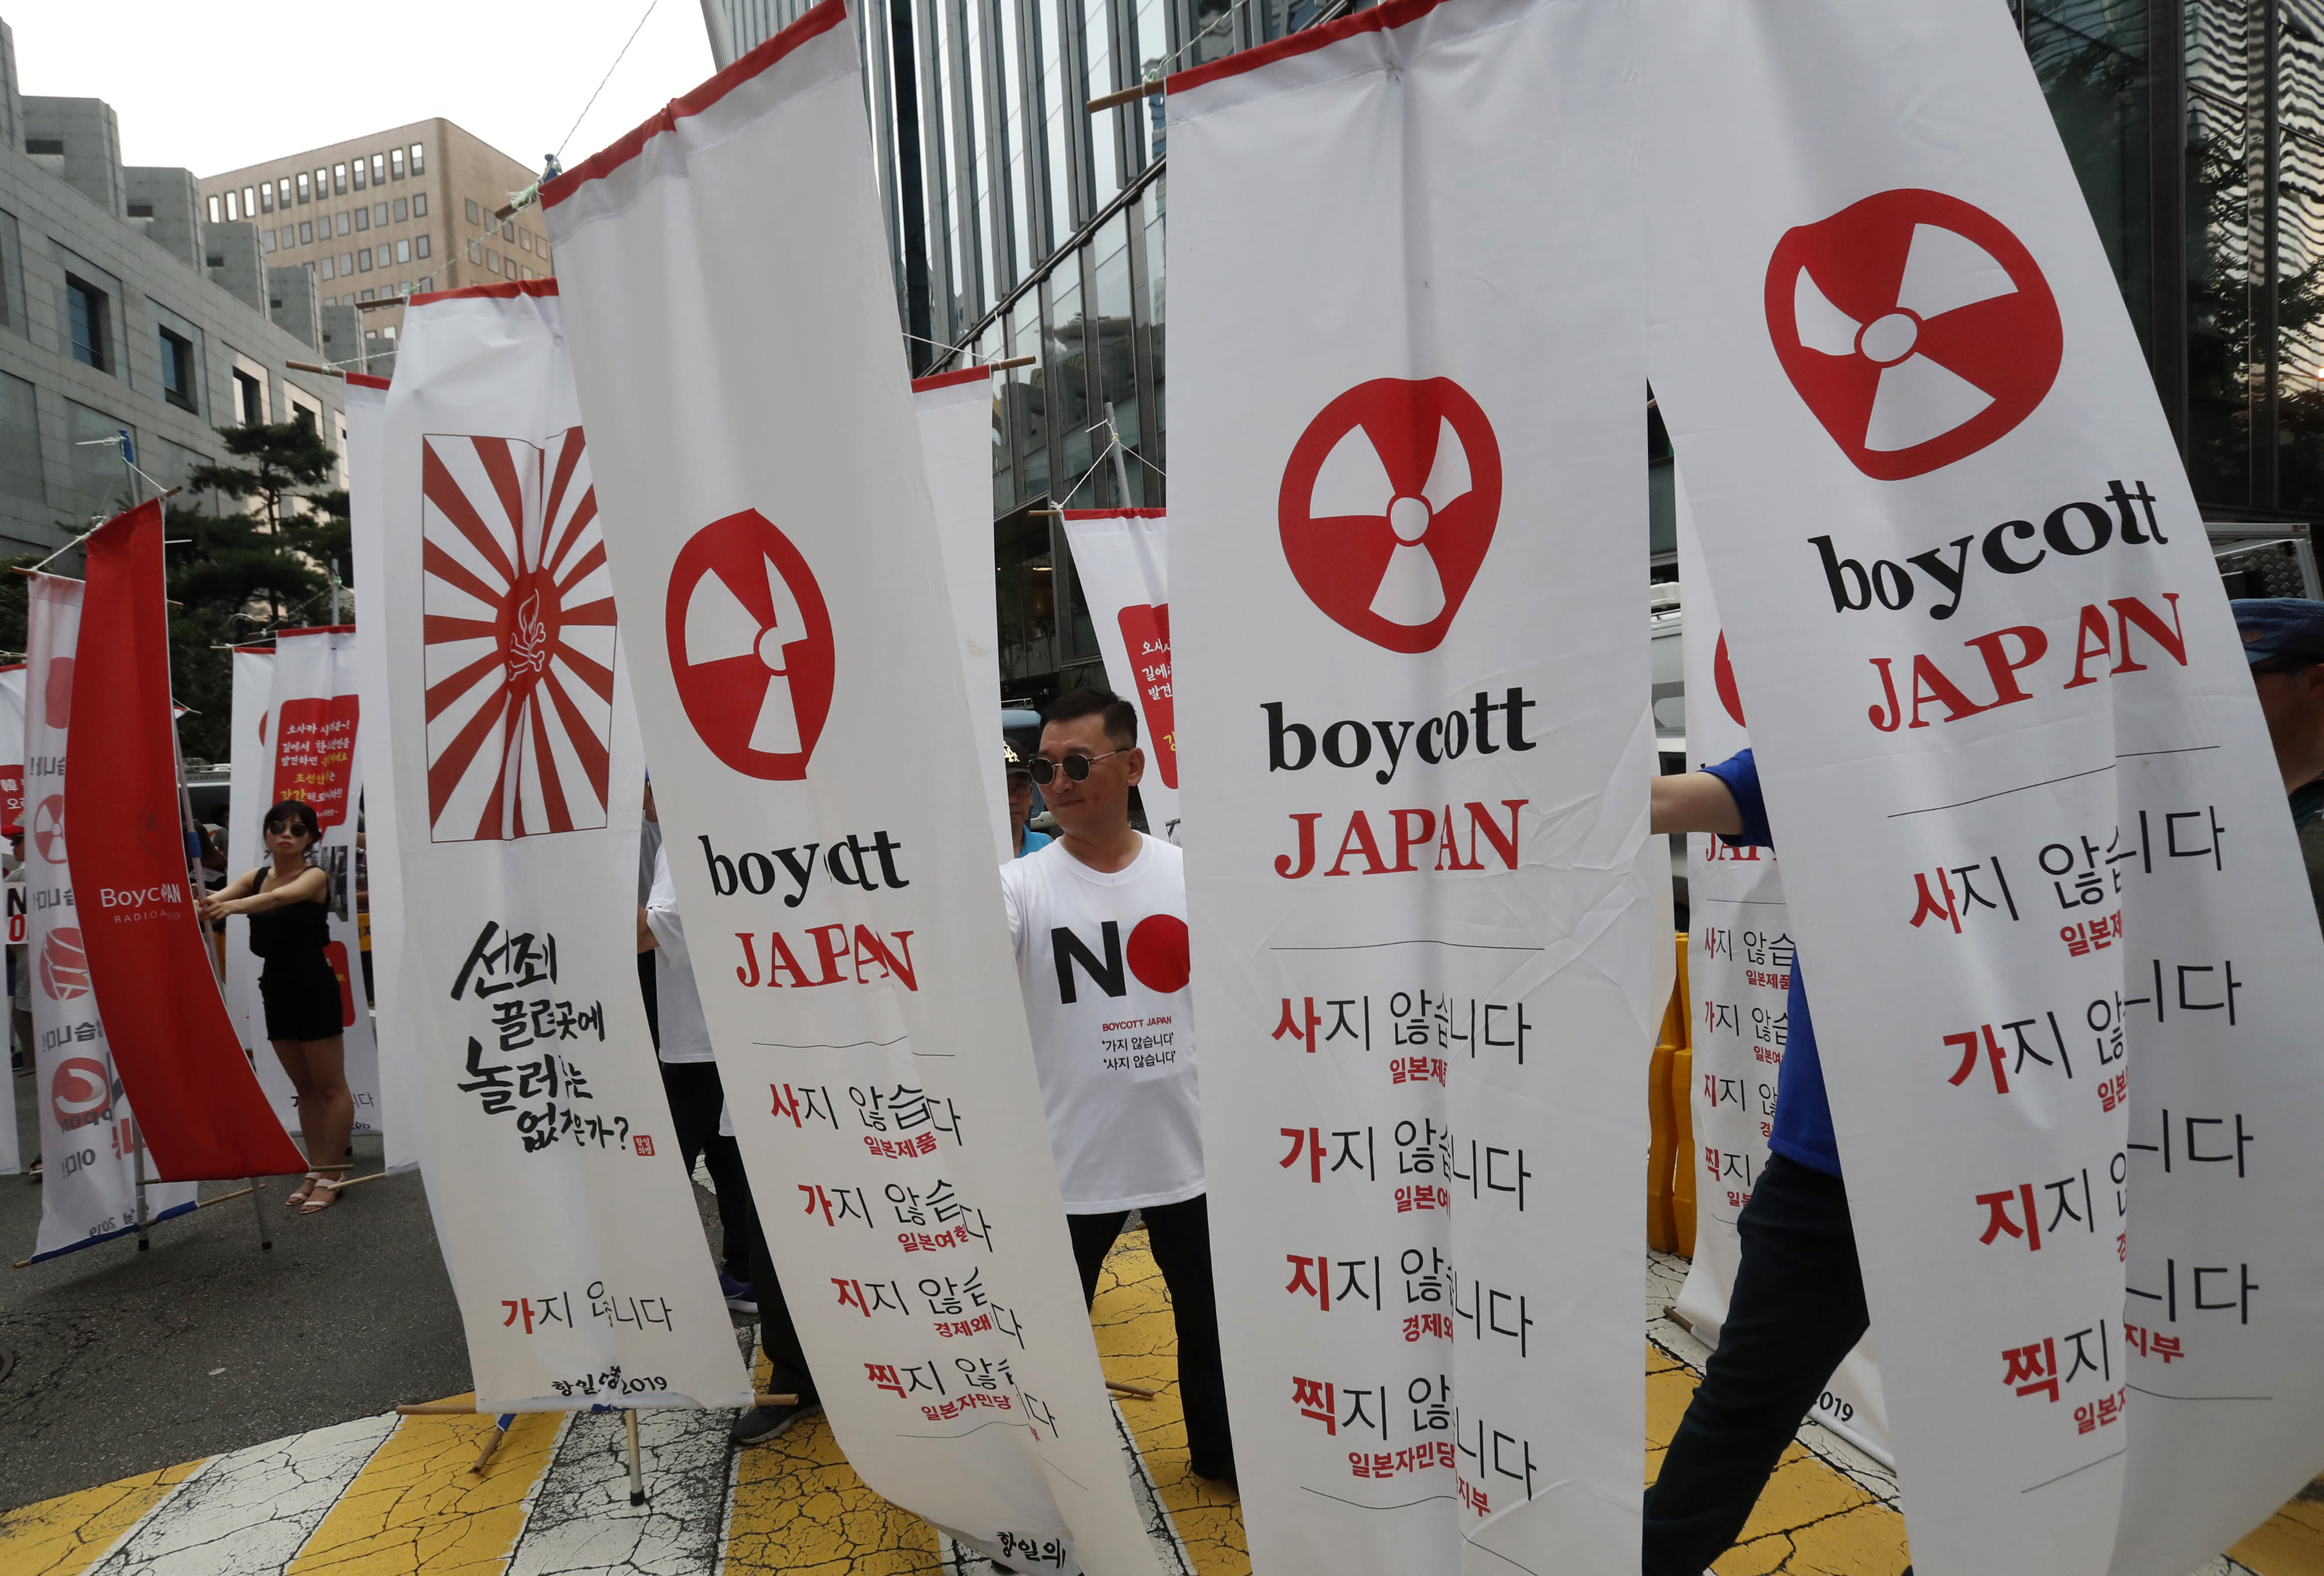 Thousands of South Koreans protest Japanese trade curbs